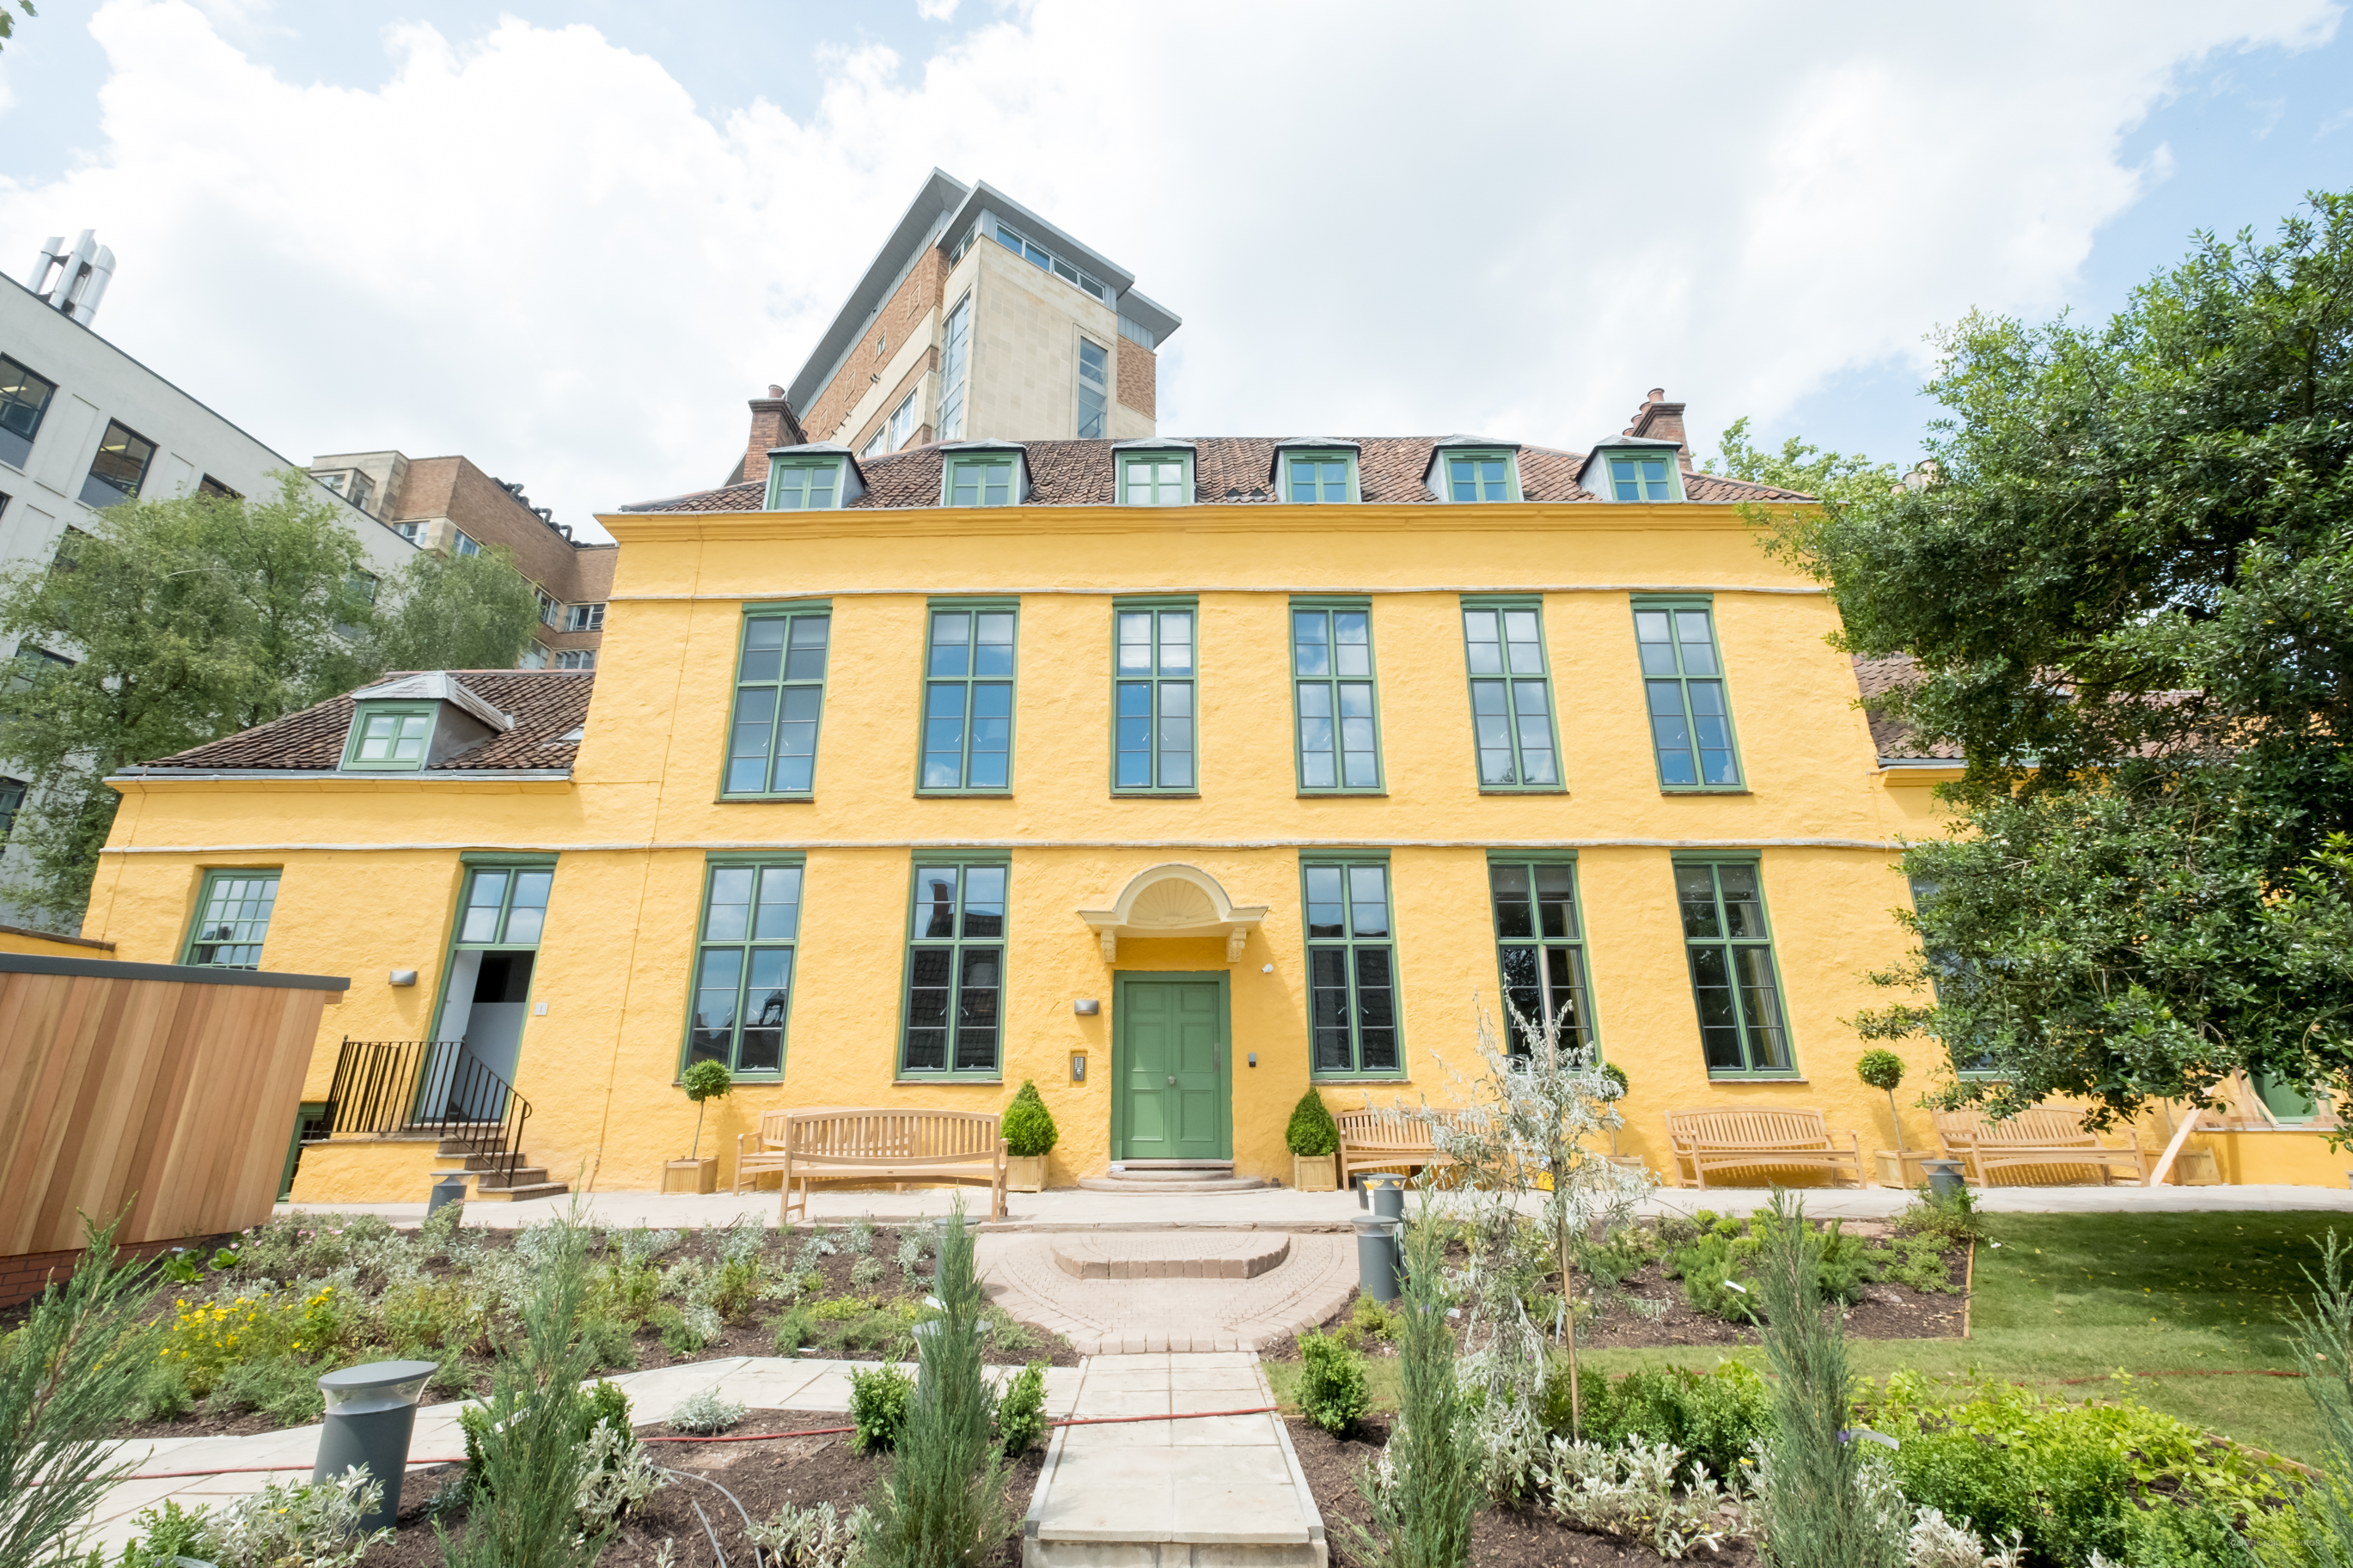 Works To Create Boutique Student Homes Within 17th Century